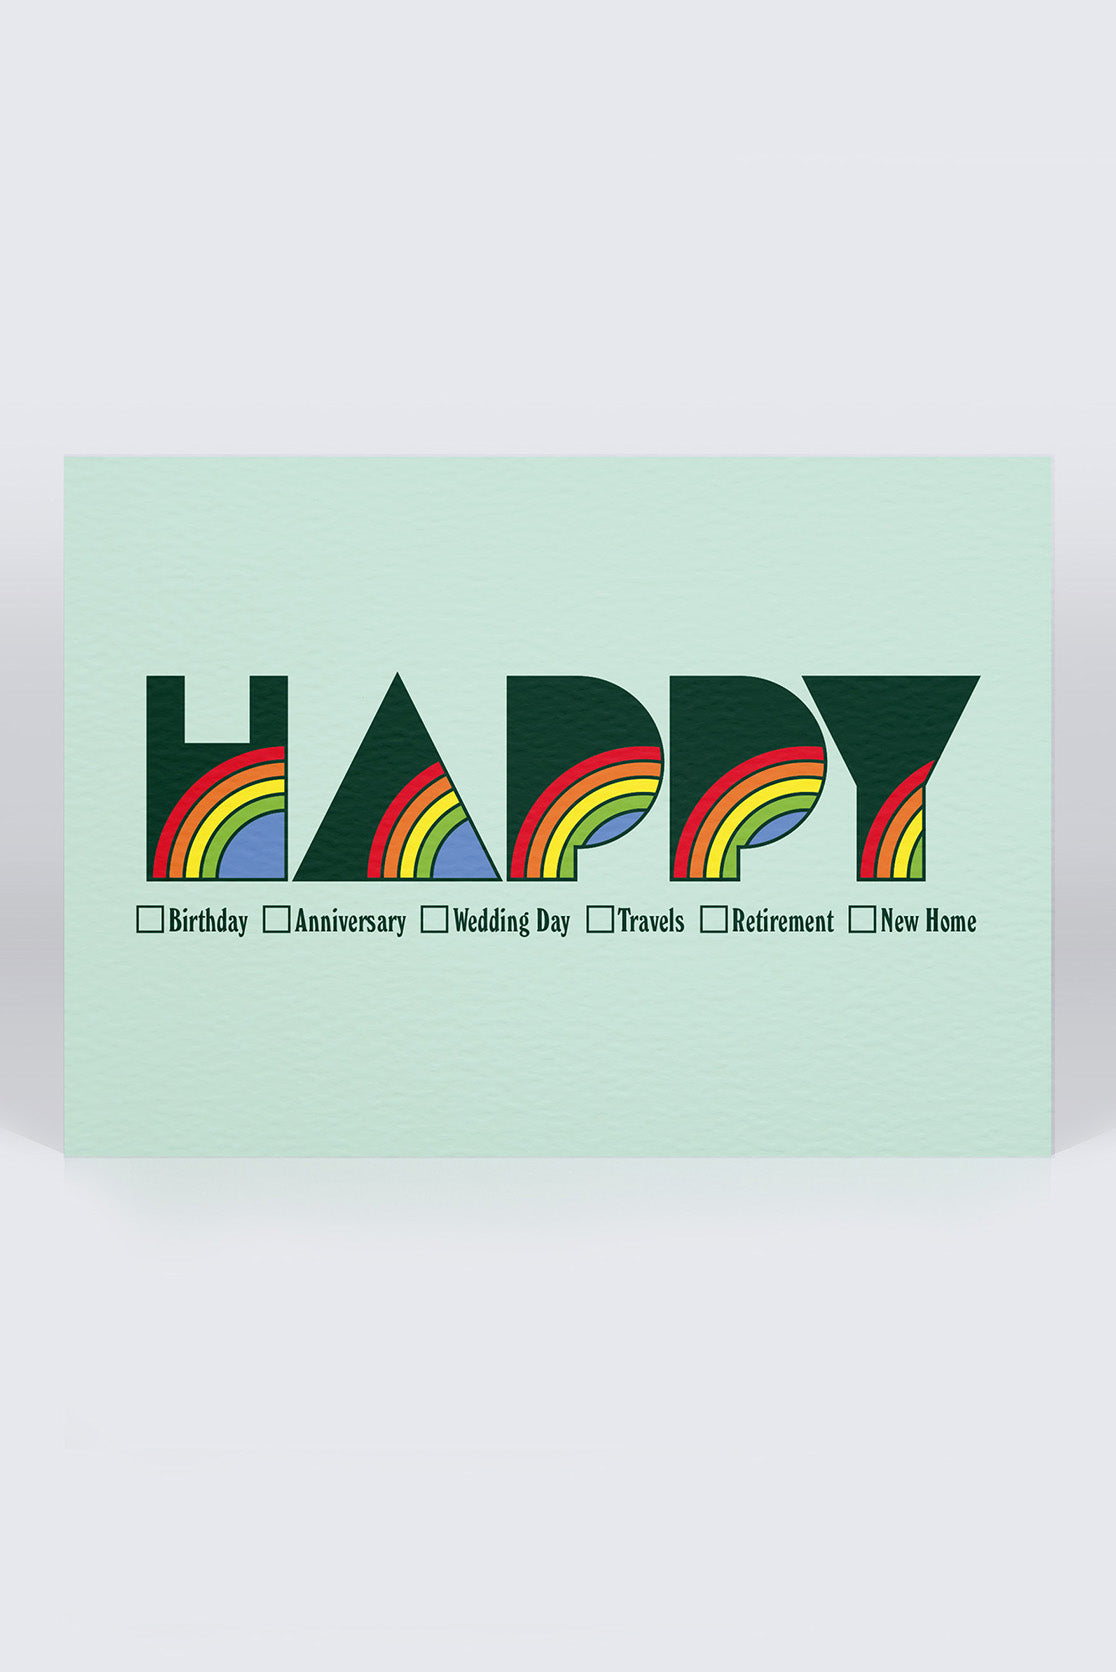 Five Letter Word Greetings Card - Happy